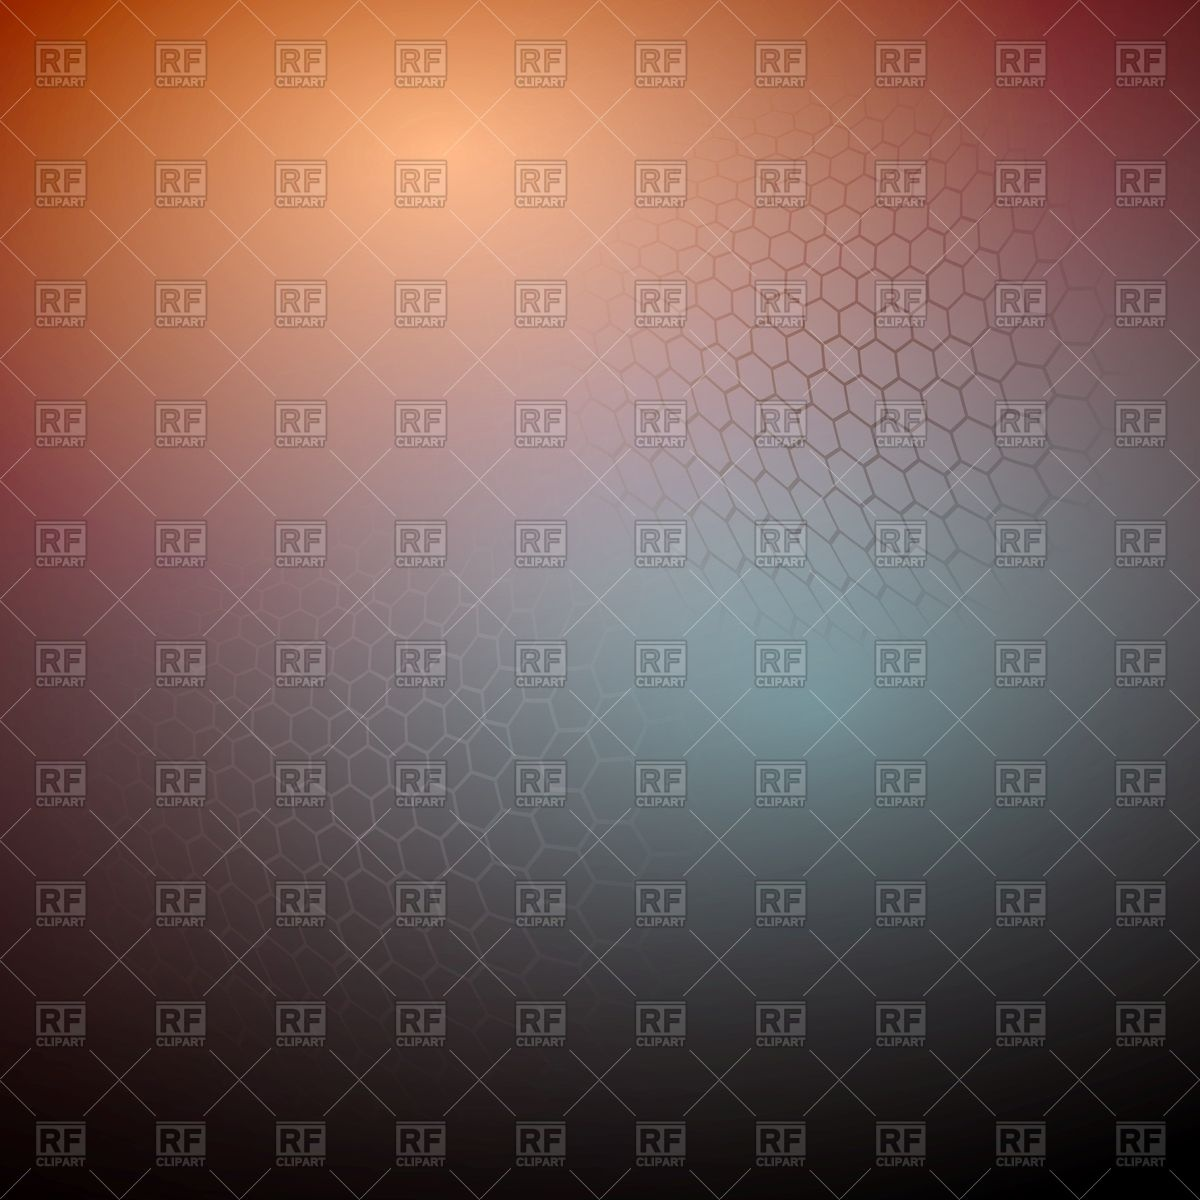 Abstract dark blurred background Vector Image #69083.